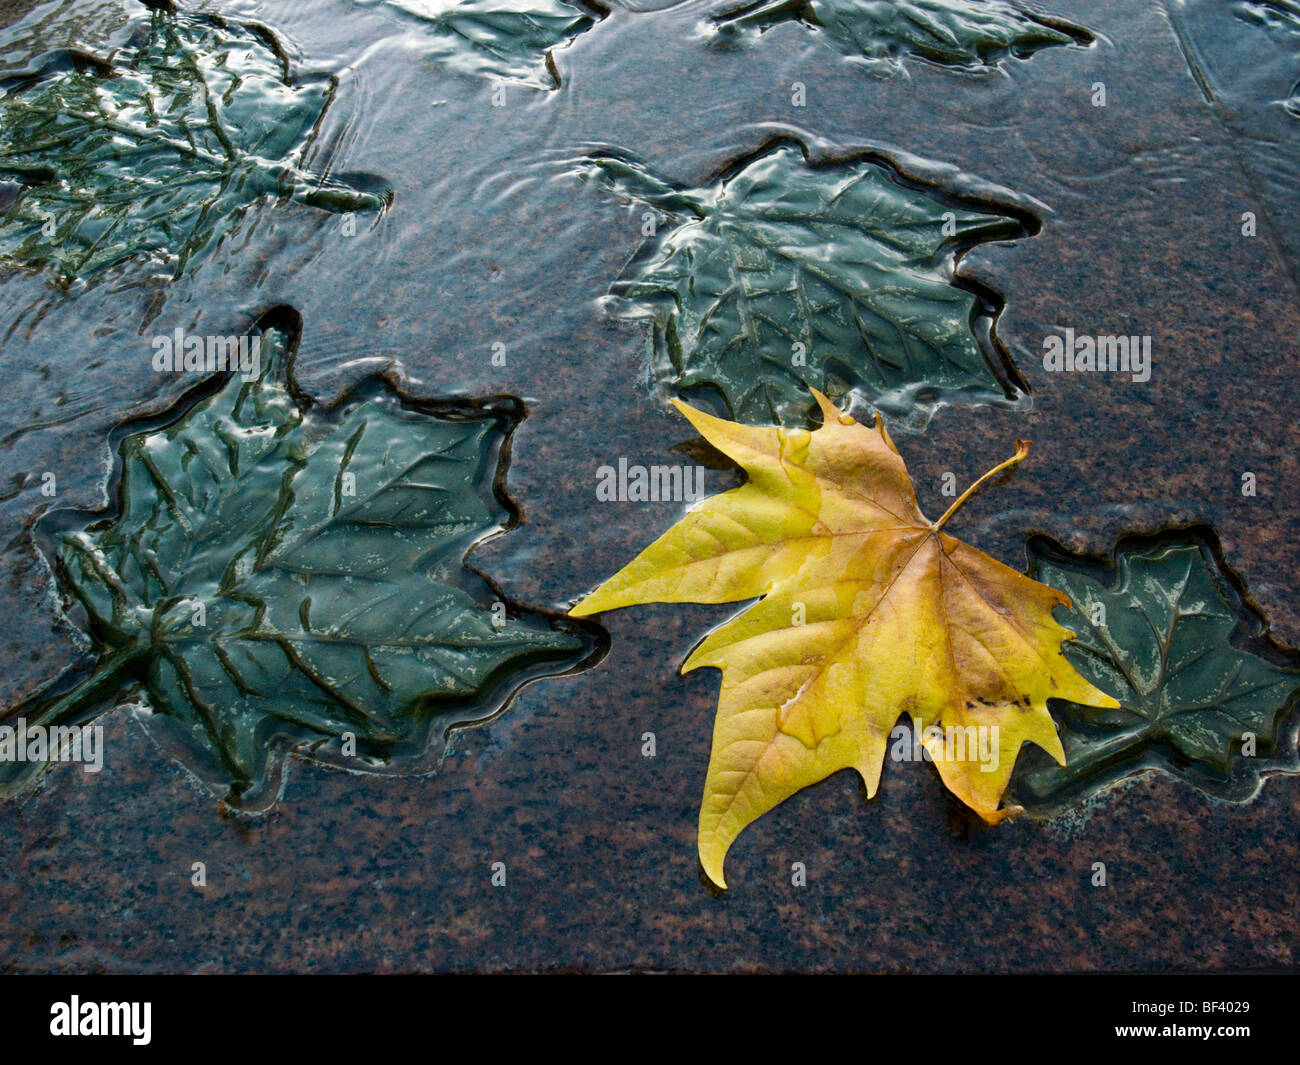 Canadian Armed Services War memorial with autumn leaf, Green Park, London UK - Stock Image